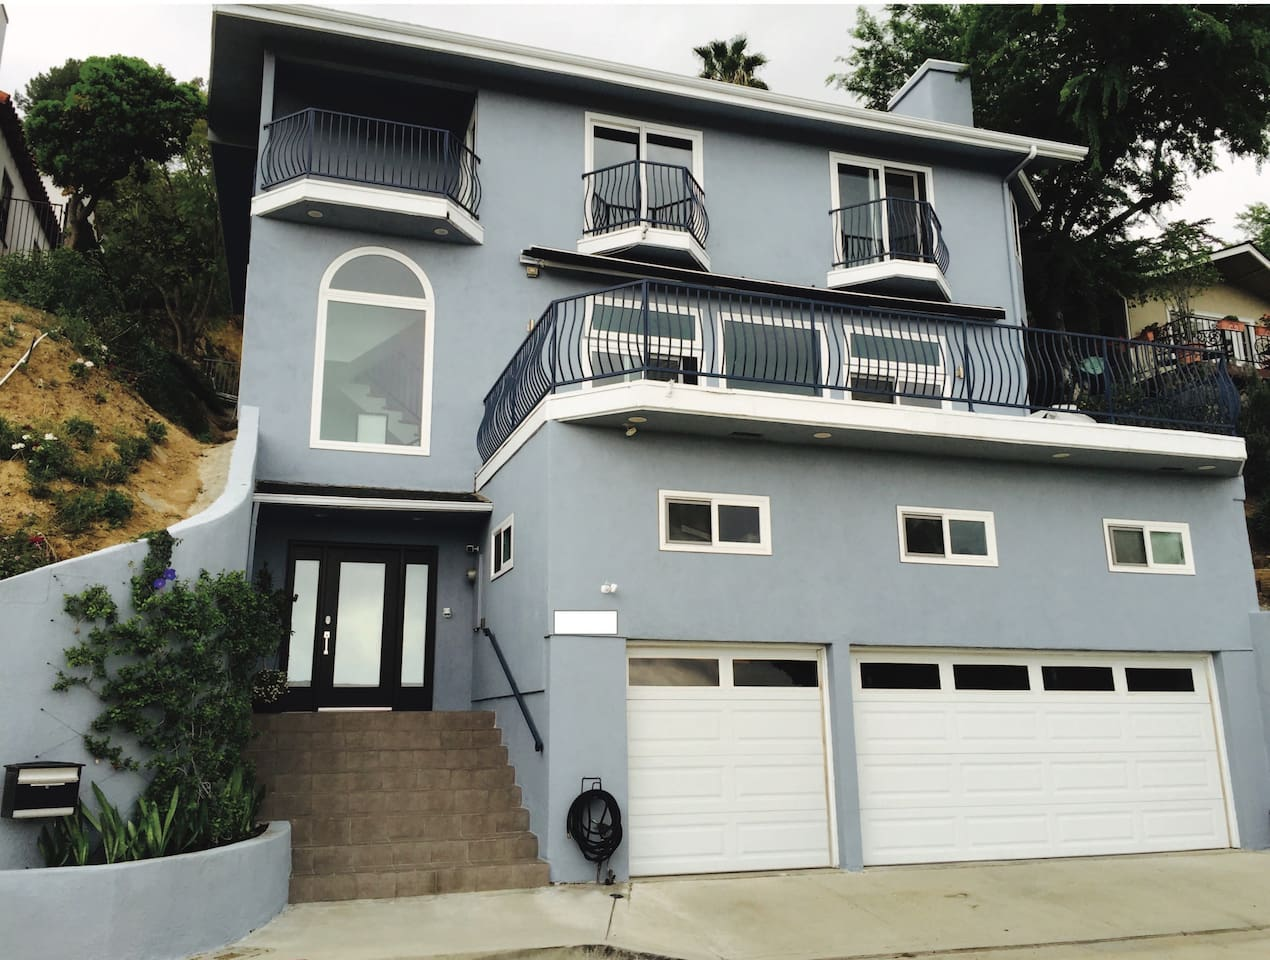 Your home away from home but with an added luxury of SO CAL, 2 central air condition/heat (1 on each floor), 14 Solar panels-top of the roof for best power provided to the home & all new 21 windows/slide doors dual pane for protection from heat/cold.